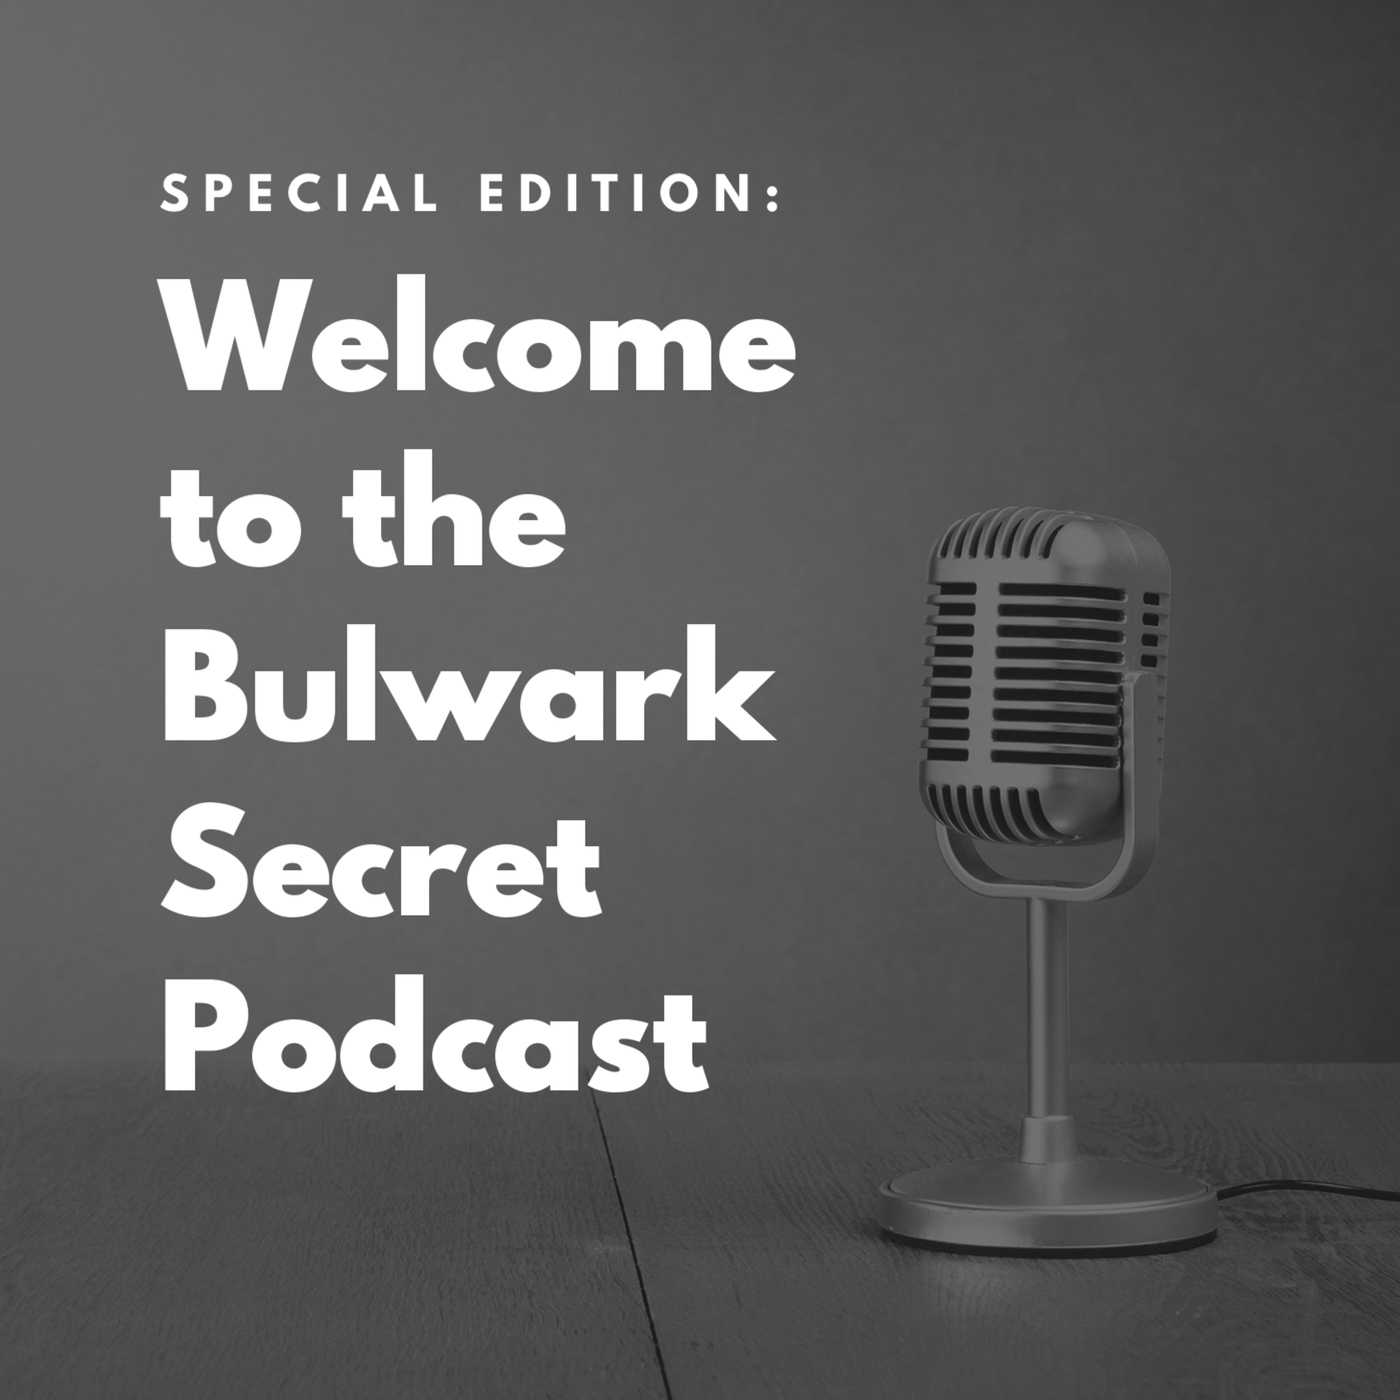 The Bulwark Secret Podcast how-we-stopped-worrying-and-learned-to-love-bloomberg: How We Learned To Stop Worrying and Love the Bloomberg